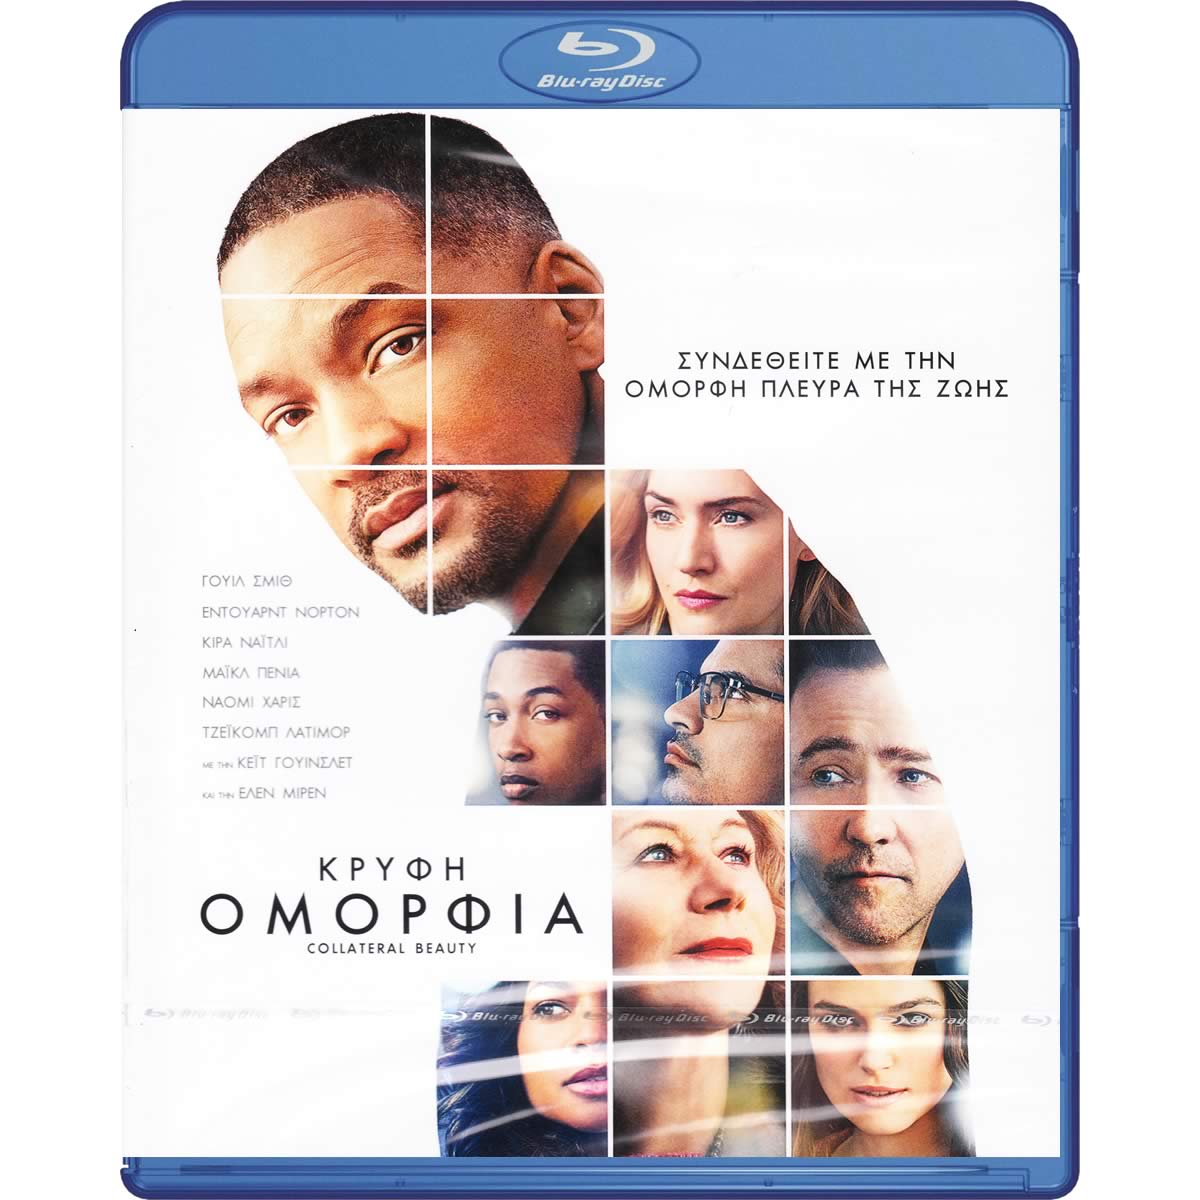 COLLATERAL BEAUTY - ΚΡΥΦΗ ΟΜΟΡΦΙΑ (BLU-RAY)